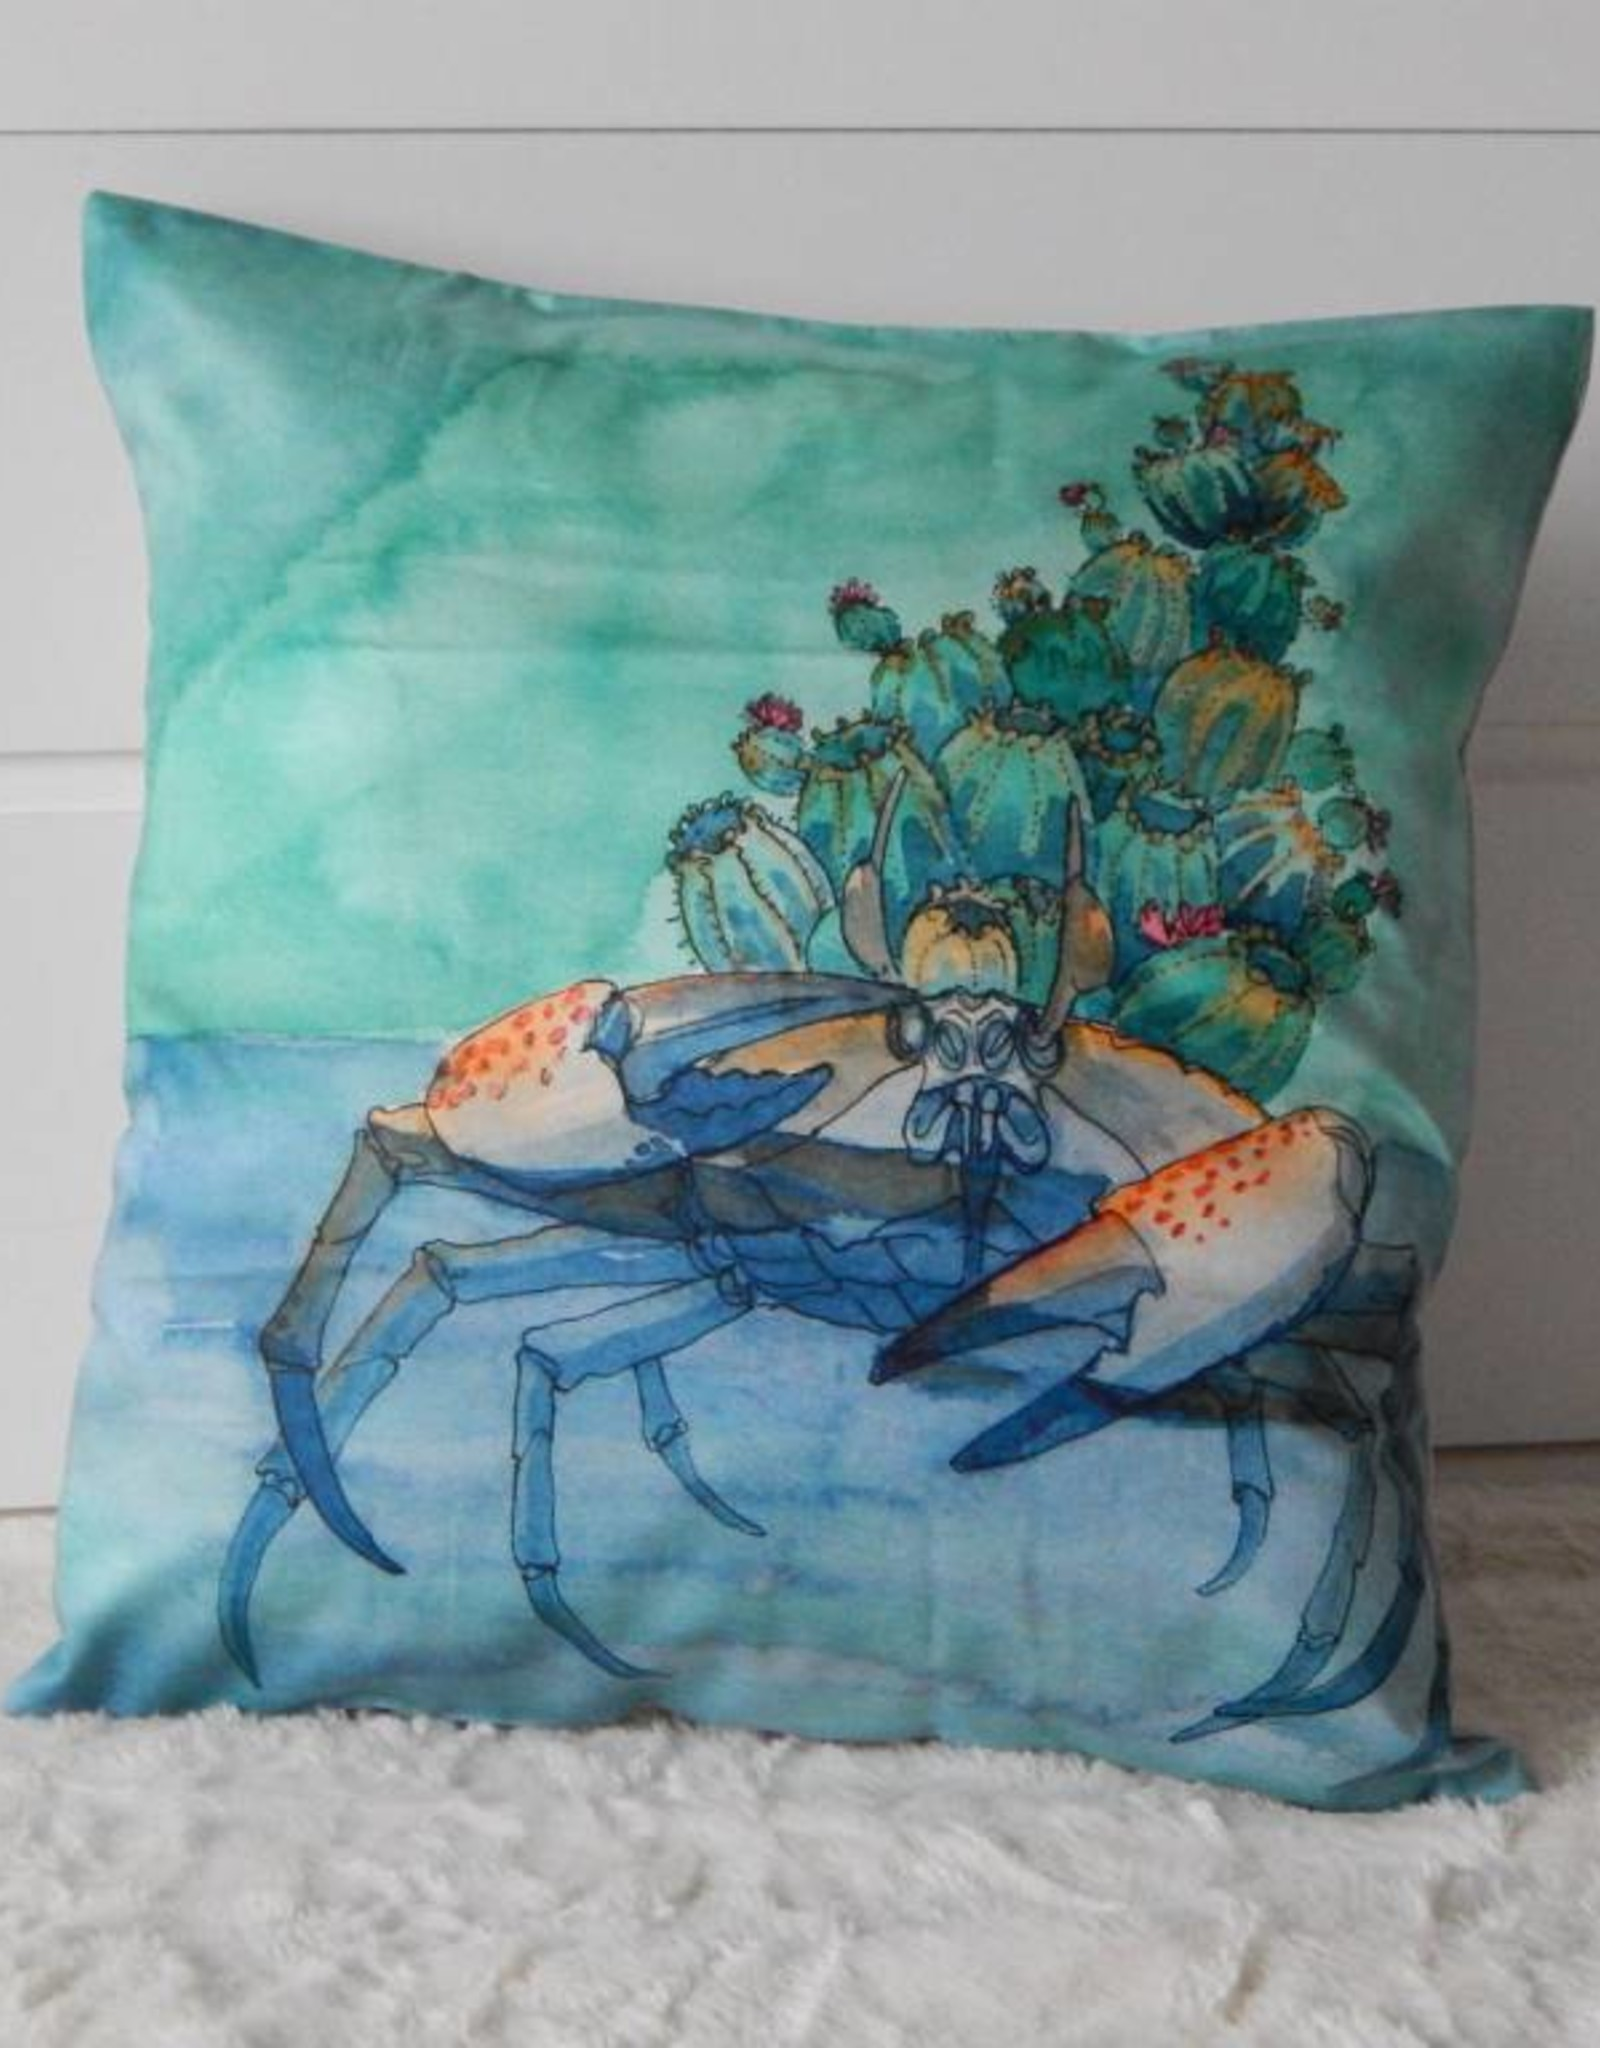 Nicole Pustelny Pillow Sheets, Cactus Crab